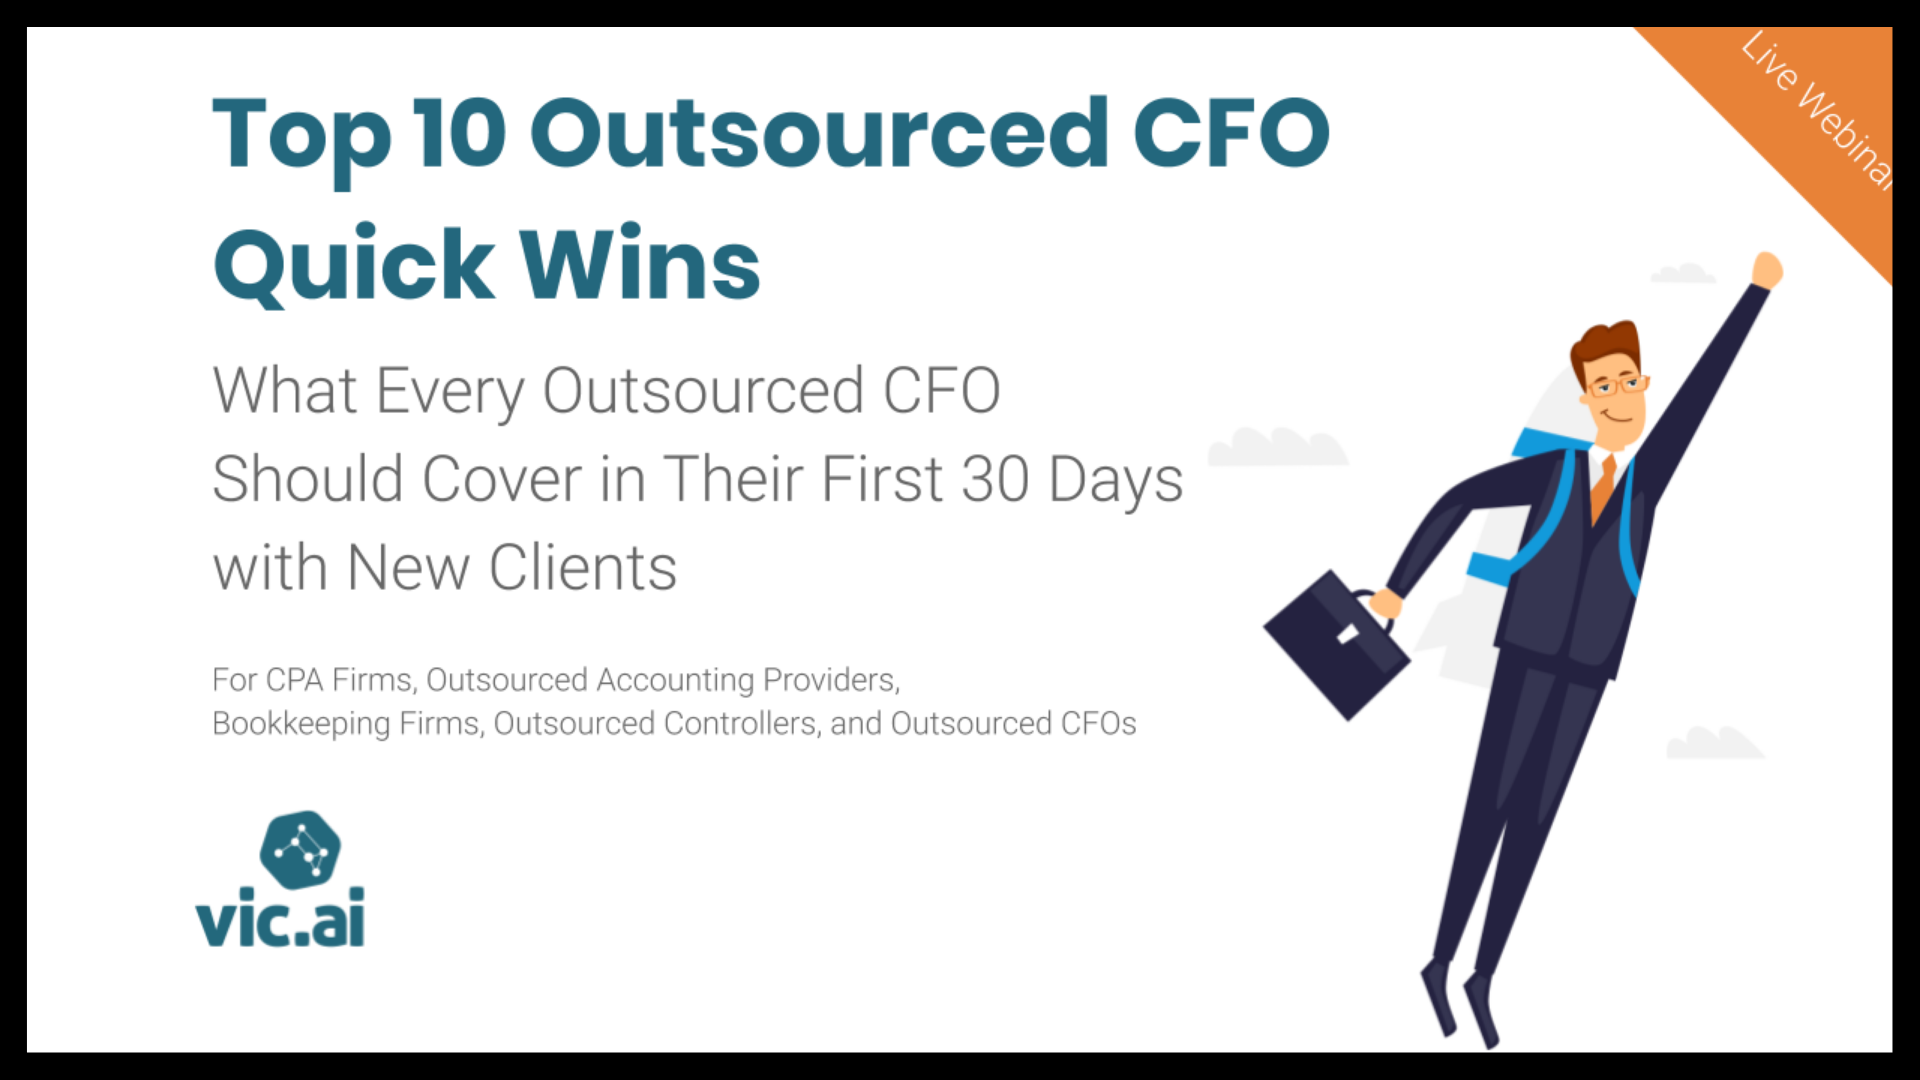 Top 10 Outsourced CFO Quick Wins [Just fill out the short form on this page to get access to the webinar recording]